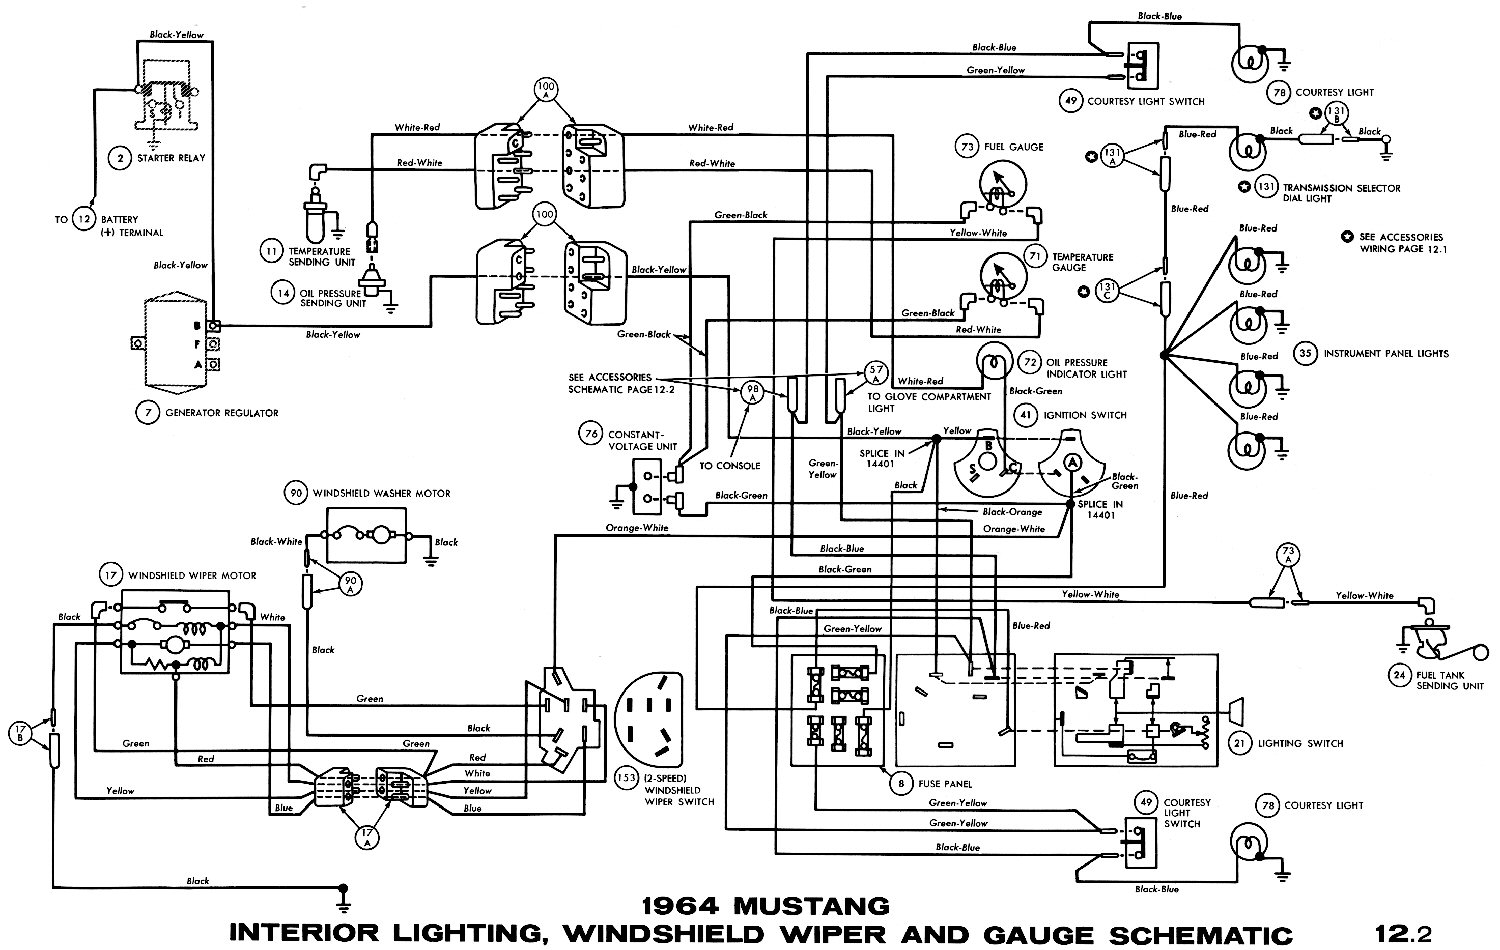 1964k 1964 mustang wiring diagrams average joe restoration 1967 mustang wiring diagram at alyssarenee.co